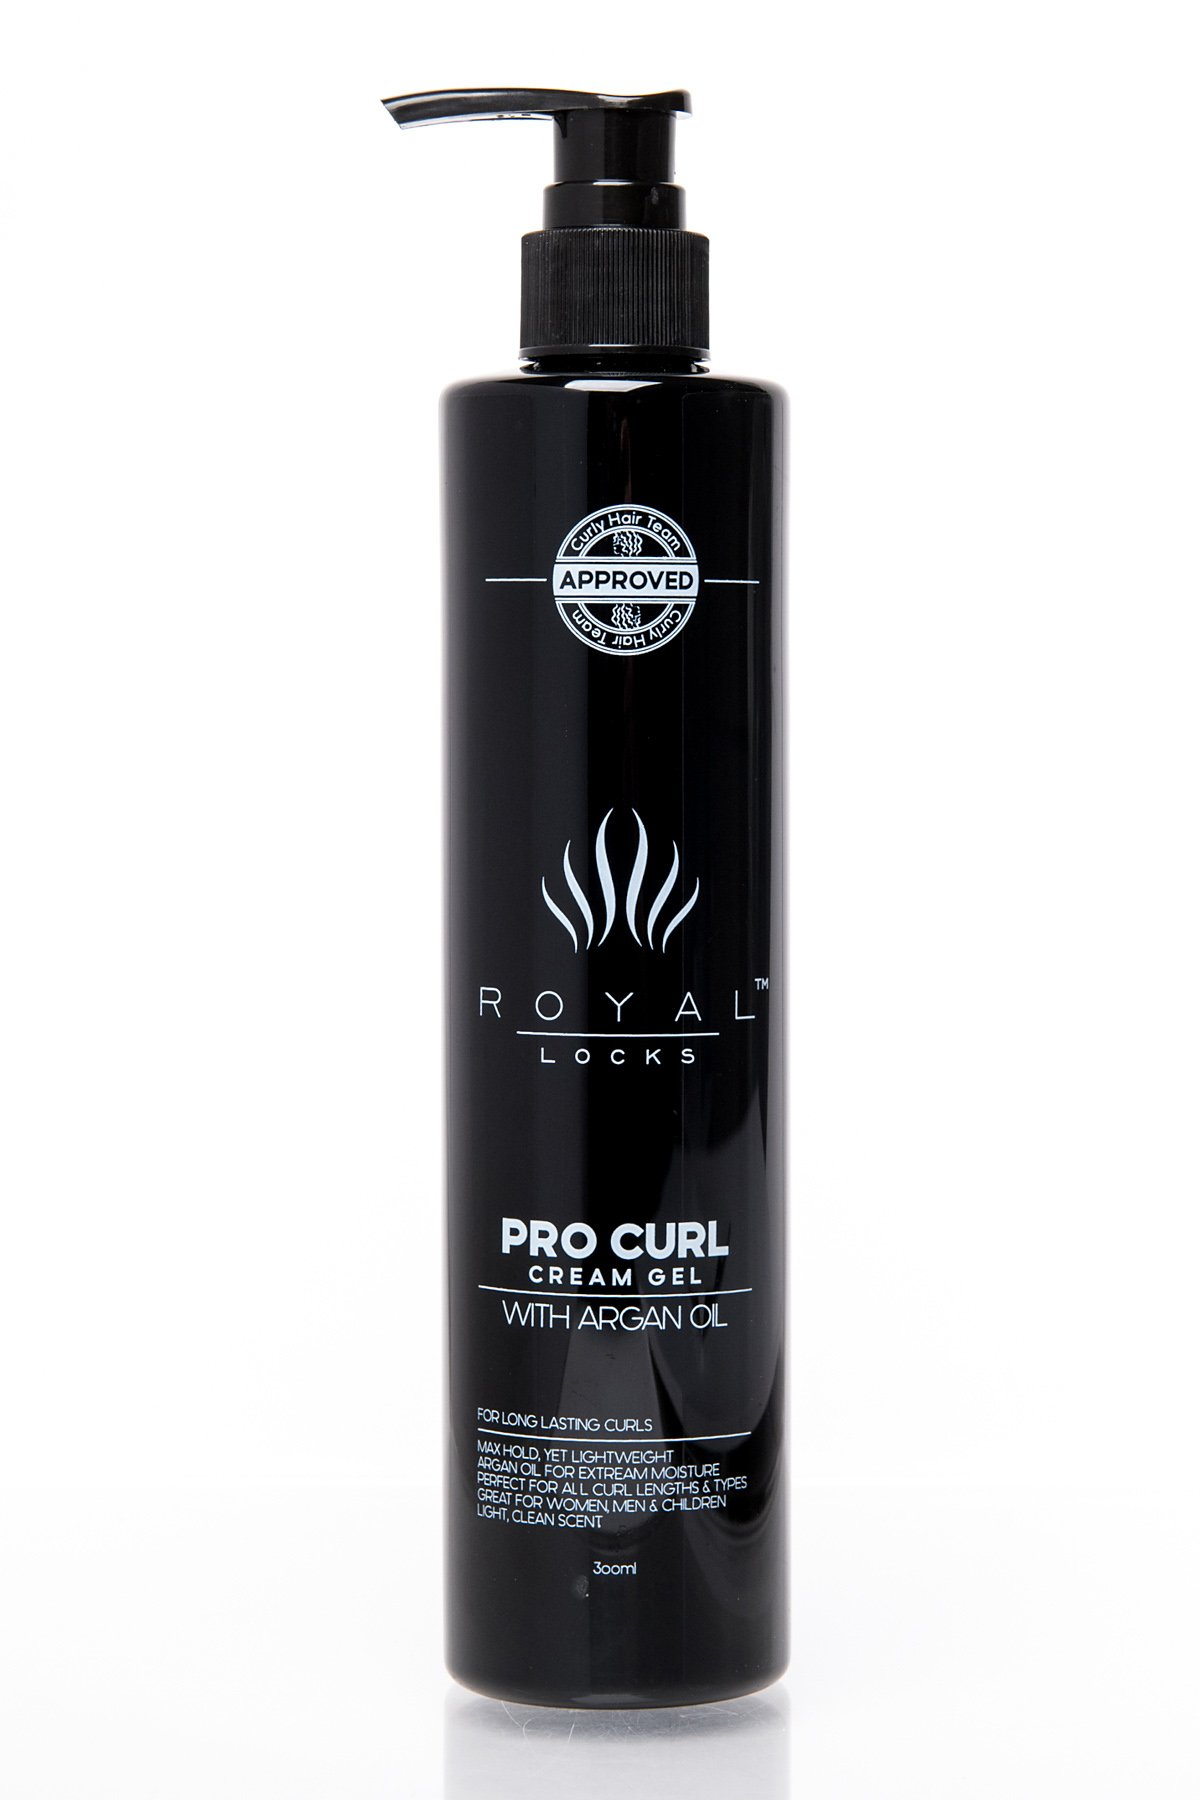 Curl Cream Gel by Royal Locks. Professional Curly Hair Product Defining Cream Moisture Gel Hold and Argan Oil Infused Anti Frizz. Perfect Bounce Soft Frizz Free Waves Natural Curls or Perm by Royal Locks